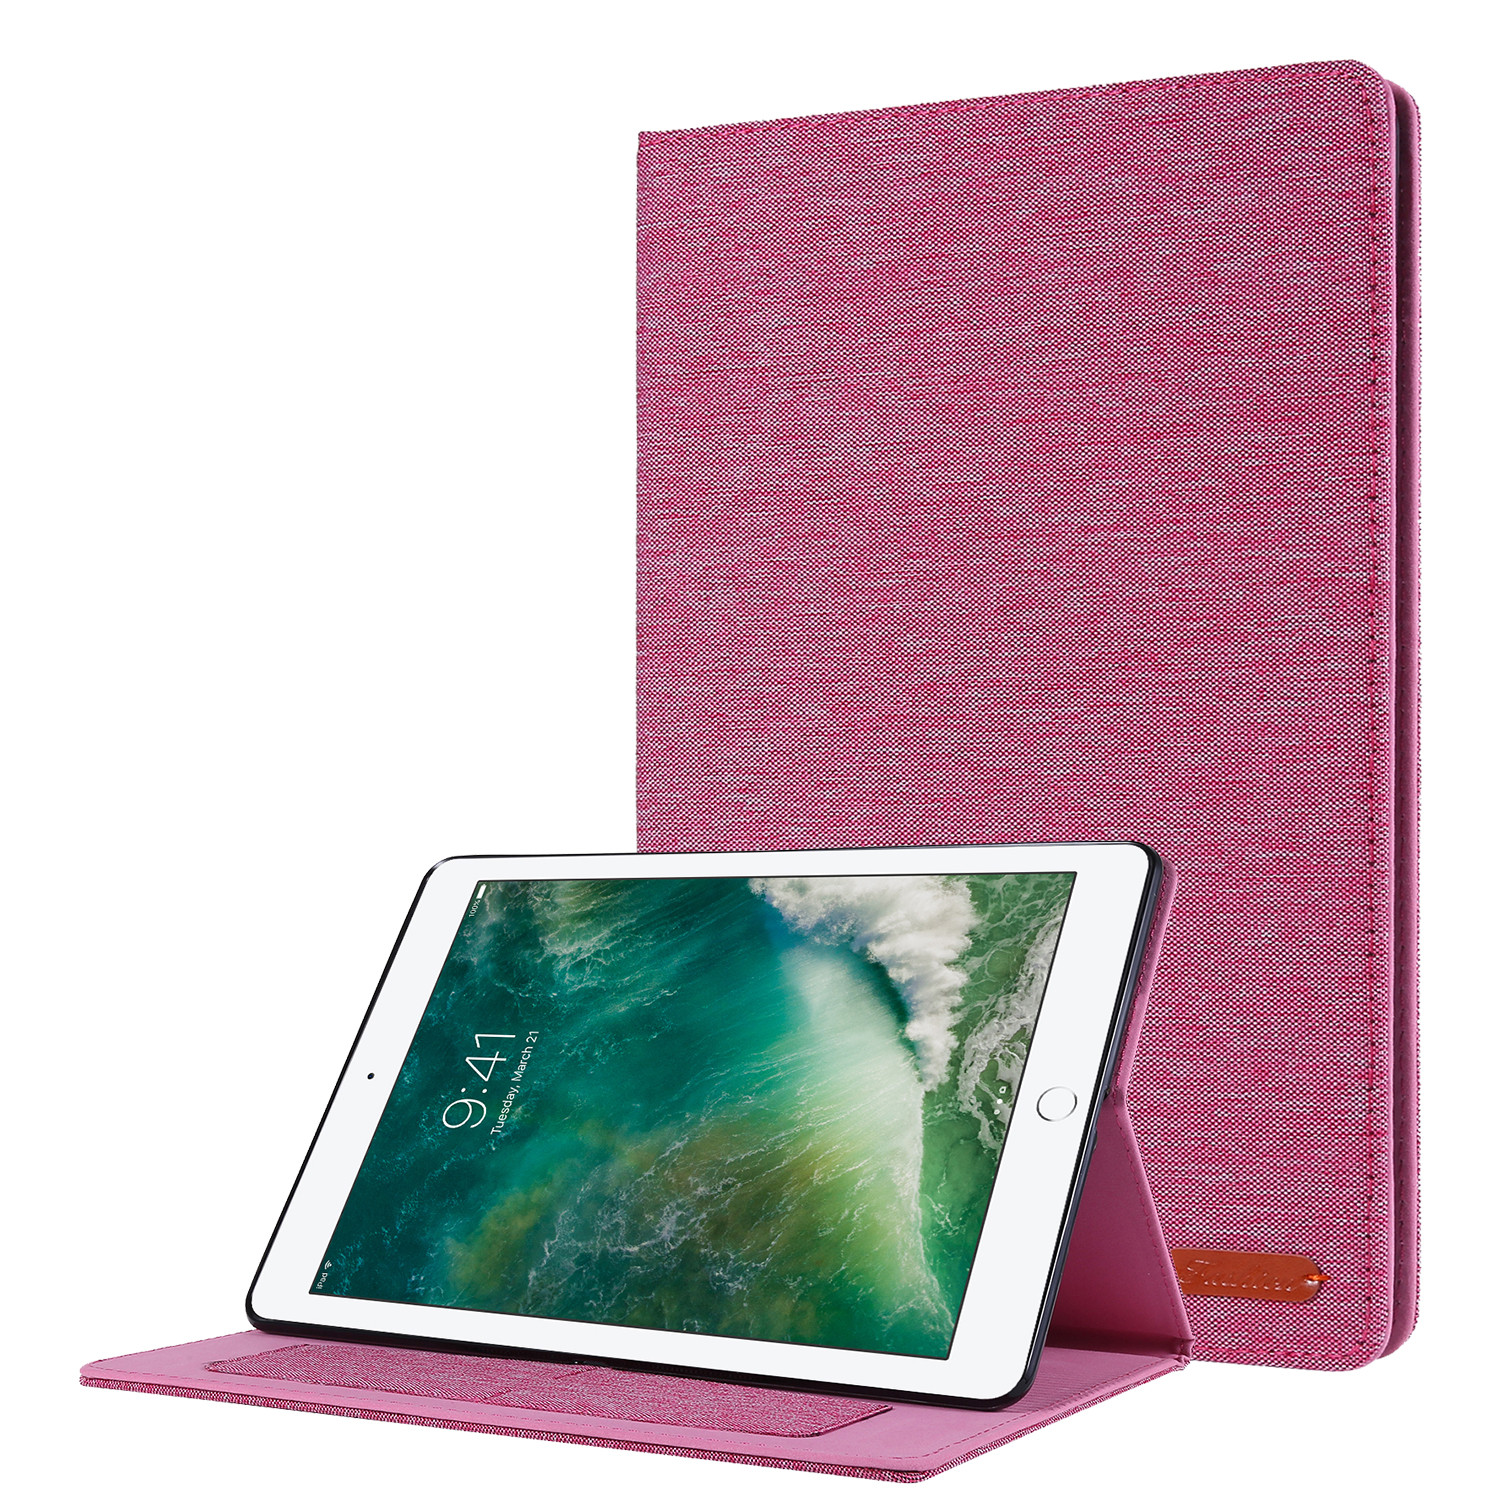 1 Red Funda For iPad 7th Generation Case for Apple iPad 10 2 2019 A2197 A2198 A2200 A2232